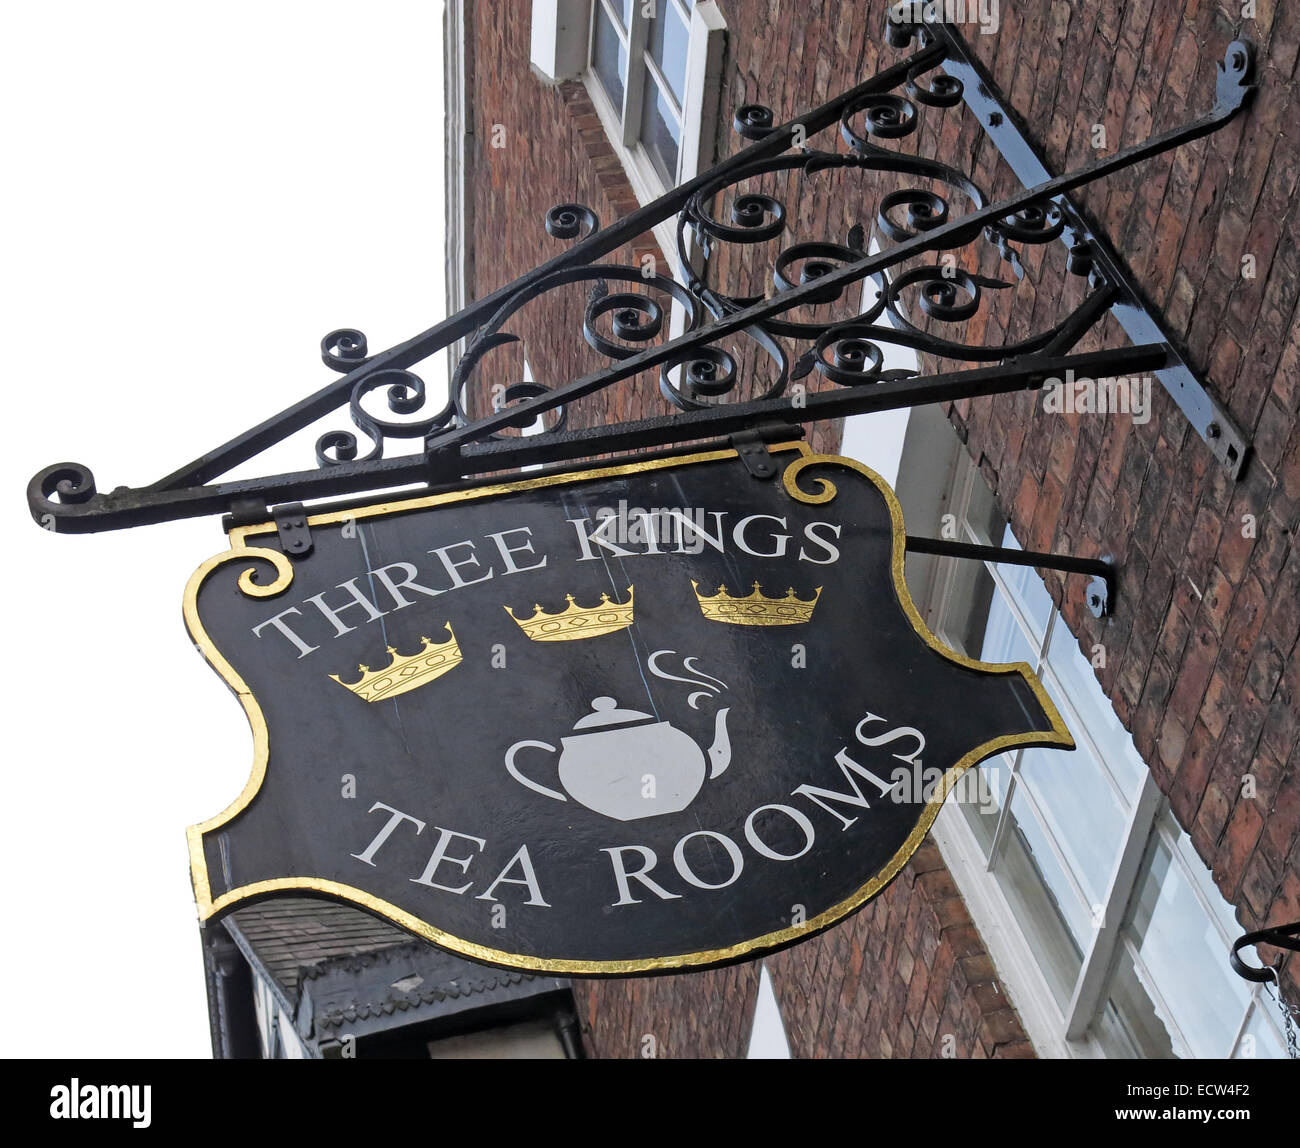 England,UK,GB,Great,Britain,tourist,tourism,in,tourists,traditional,afternoon,cafe,Grade,Two,Listed,Building,Grade2,GradeII,Tithe,Store,of,the,Earl,of,Shrewsbury,90,-,92,Lower,Bridge,Street,City Centre,City,Centre,@hotpixUK,GoTonySmith,located,within,the,Roman,Walls,of,this,Historic,City,of,Chester.,The,Three,Kings,Tea,Rooms,are,housed,in,a,Listed,Building,which,dates,from,the,mid,17th,Century,CH1,1RU,building,is,constructed,CH11RU,Throughout,the,premises,the,timber,frames,and,roof,trusses,are,exposed,with,many,of,the,panels,retaining,their,original,infill.,One,of,the,Stairwell,timbers,has,recently,been,dated,as,early,12th,Century,making,it,the,oldest,to date,located,in,Chester.,The,Building,was,originally,thought,to,have,been,the,Tithe,Store,of,the,Earl,of,Shrewsbury,who,at,one,time,owned,the,entire,block,in,which,this,property,stands.,He,held,the,title,of,with,the,right,to,tak,Grade Two,wattle and daub,Sergeant of Bridgegate